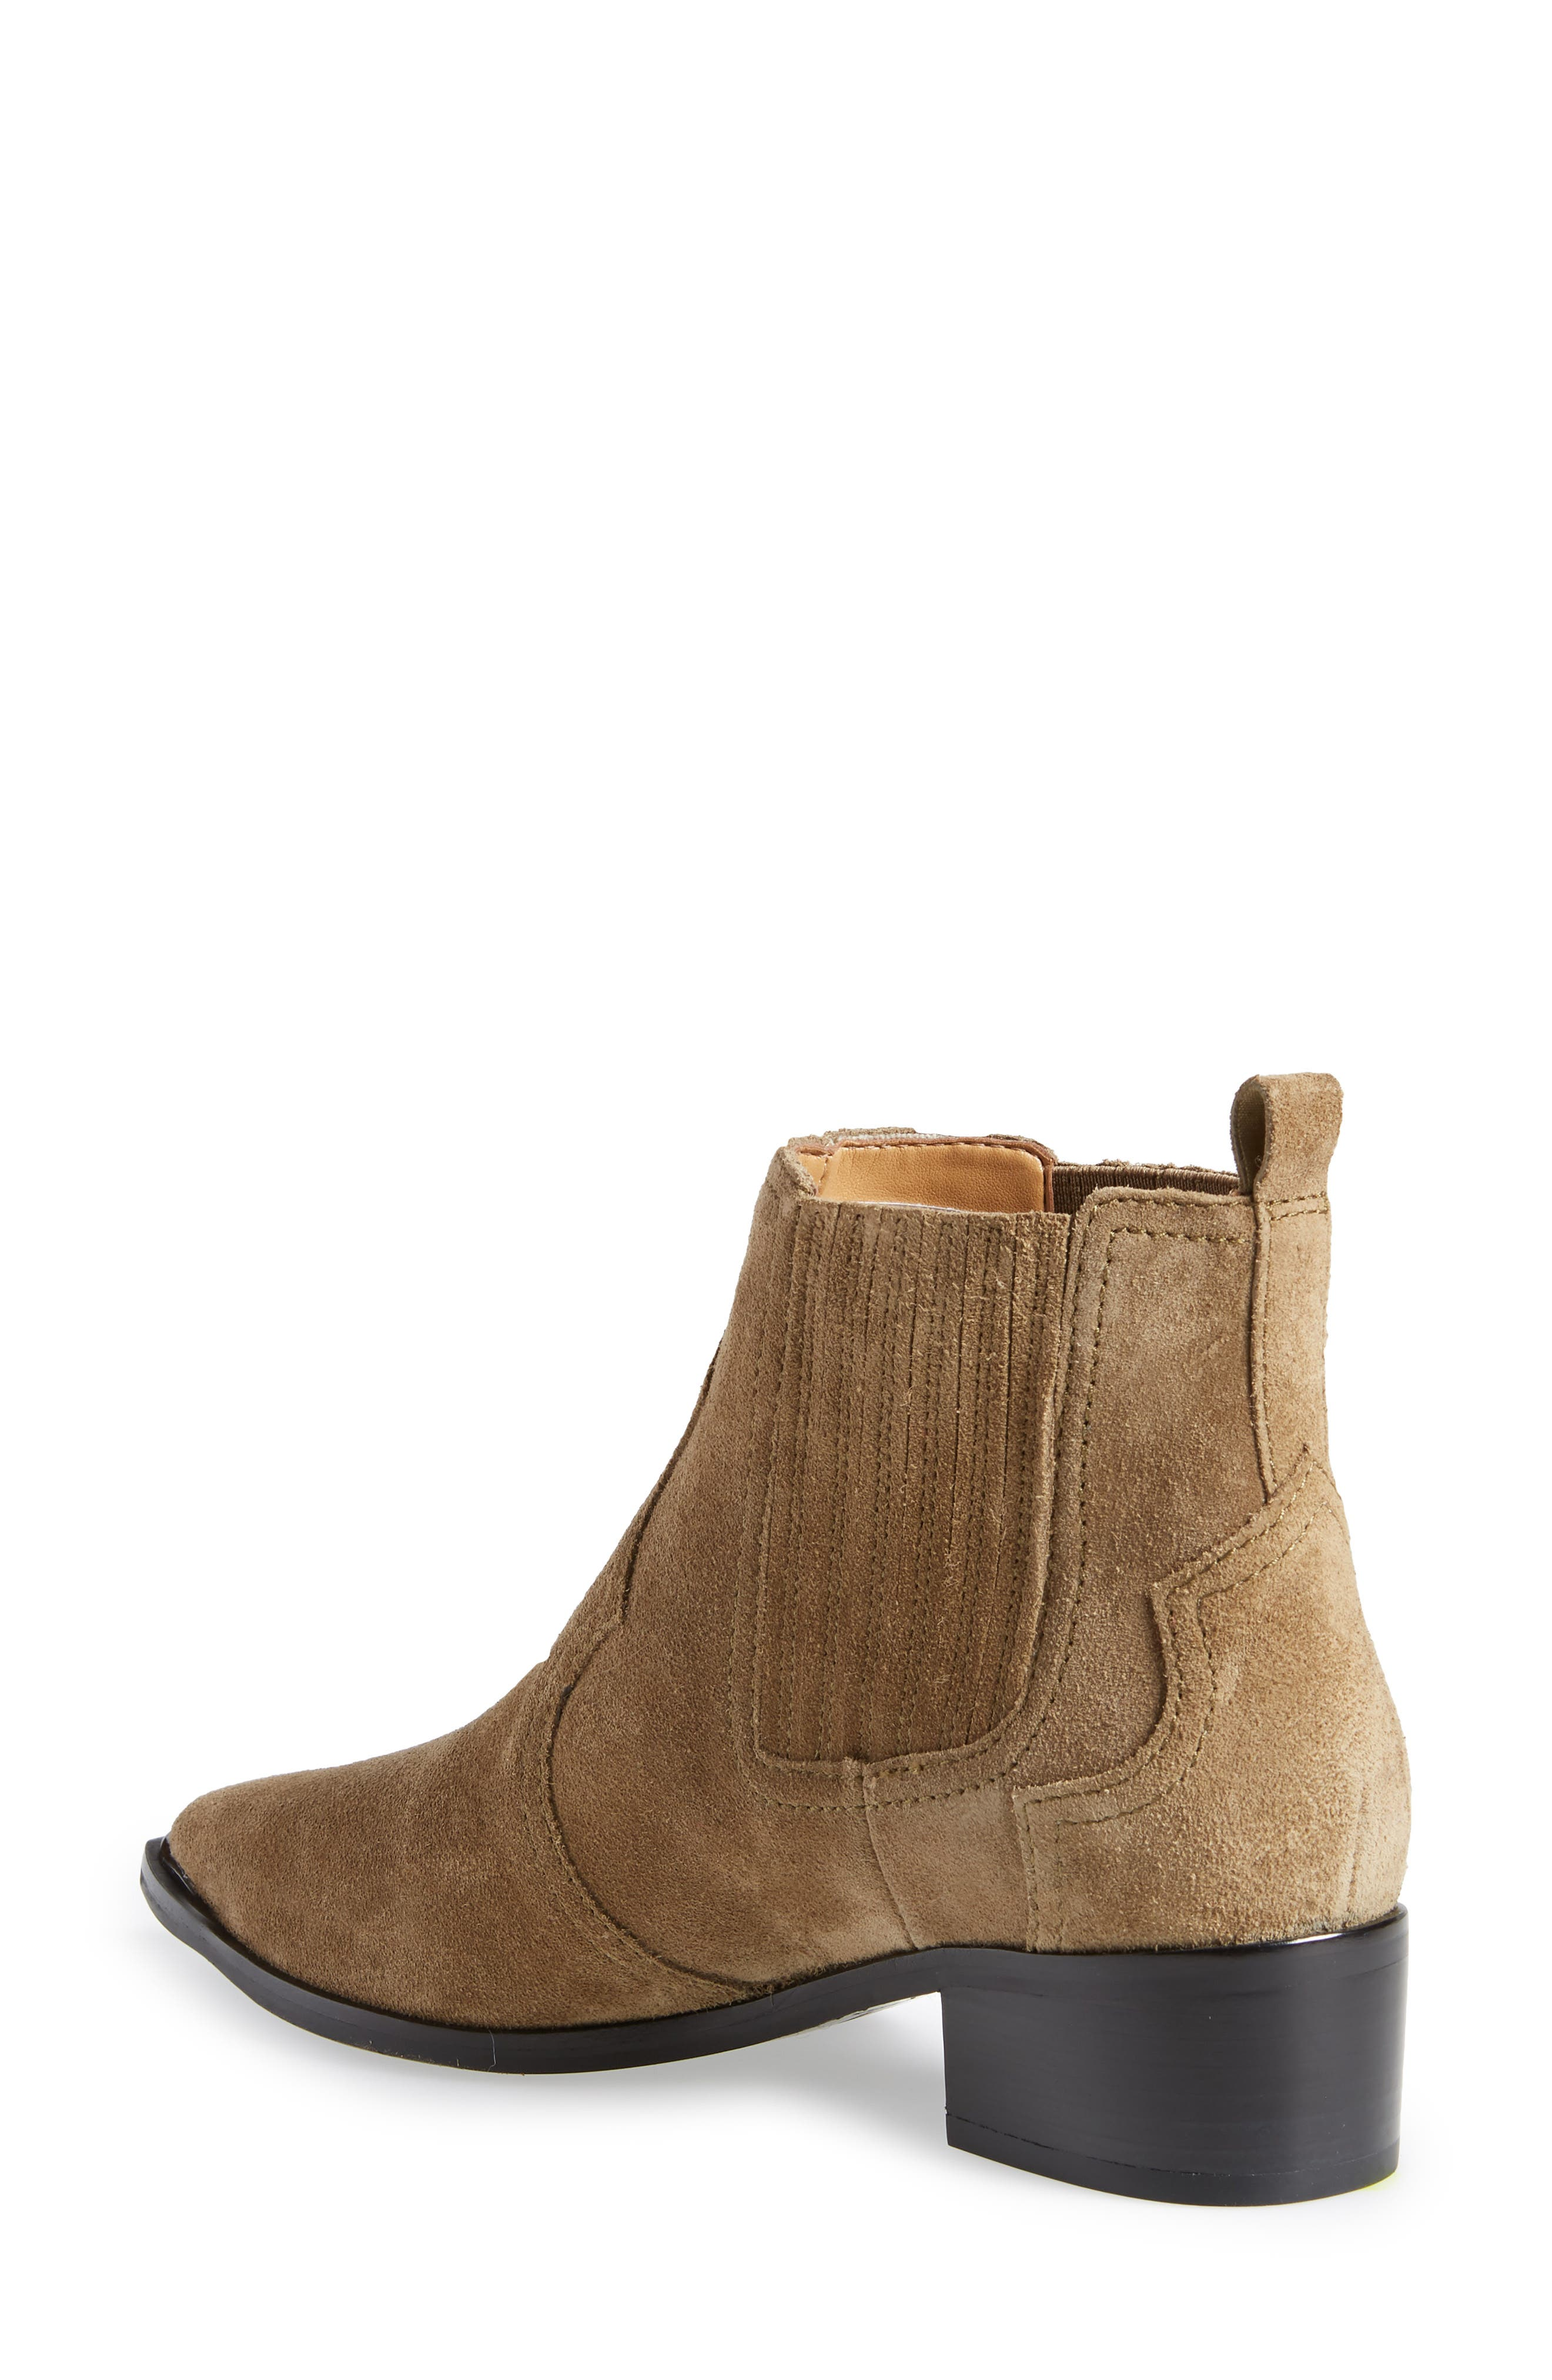 Yohani Bootie,                             Alternate thumbnail 2, color,                             TAUPE SUEDE